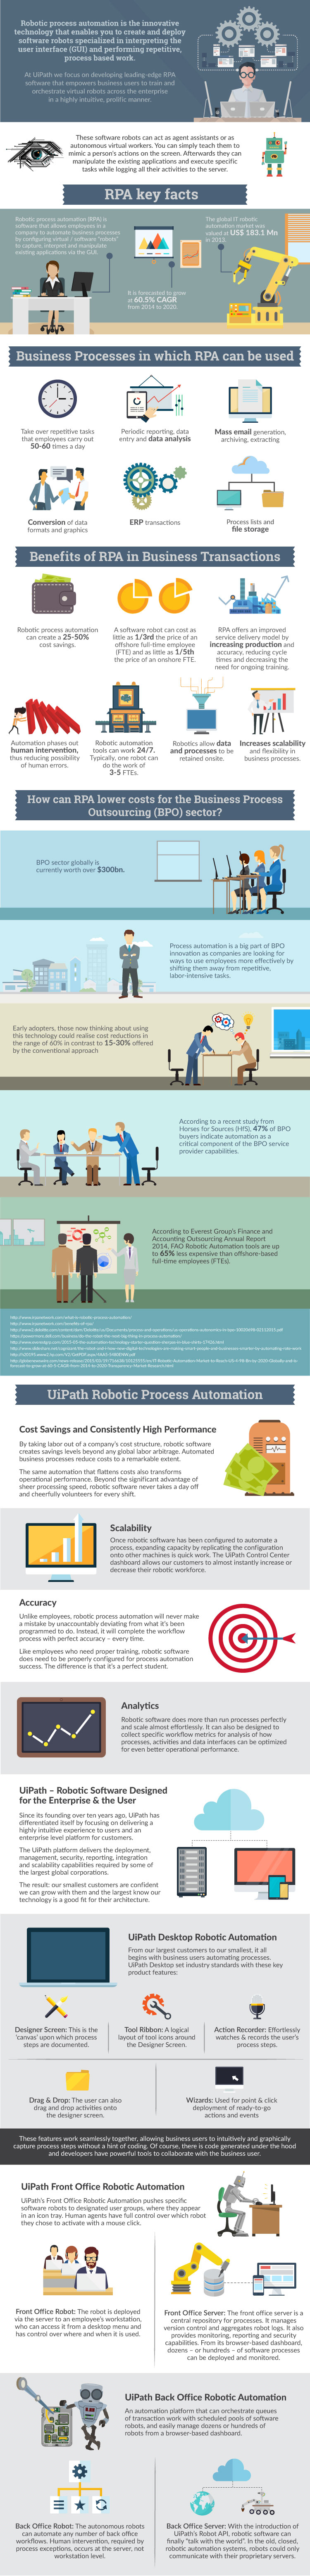 The Robotic Process Automation